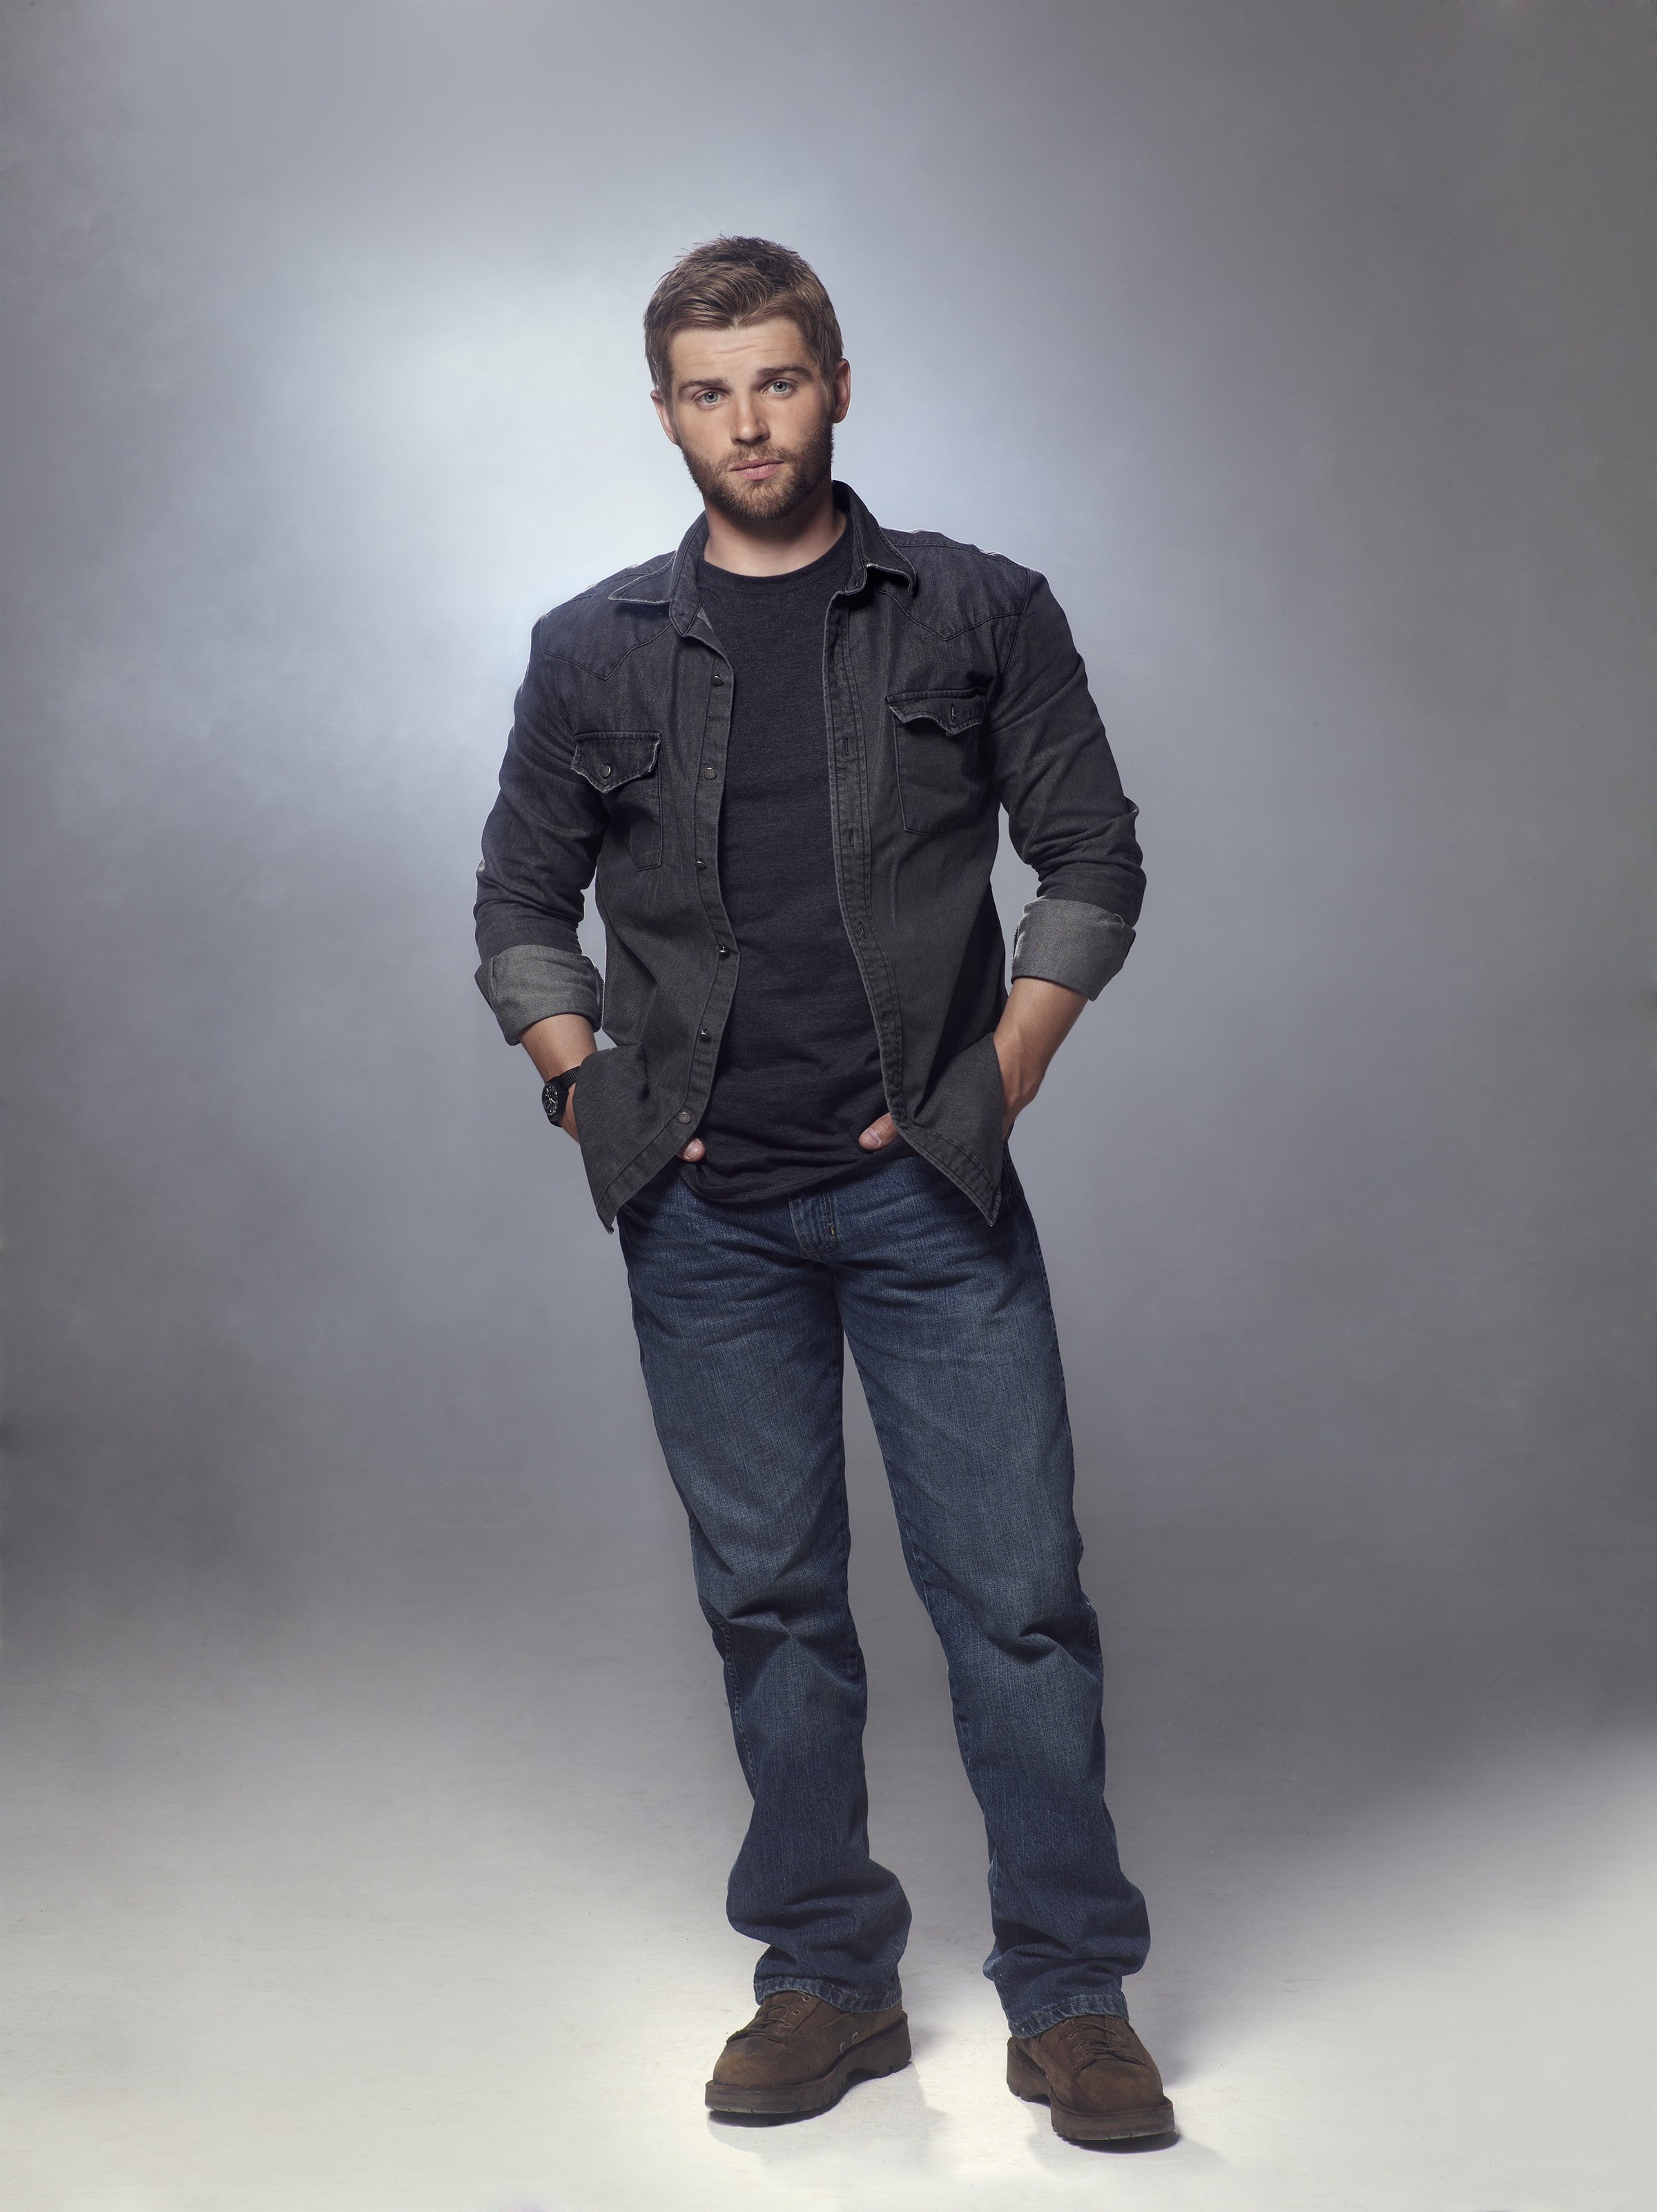 Mike Vogel HQ wallpapers